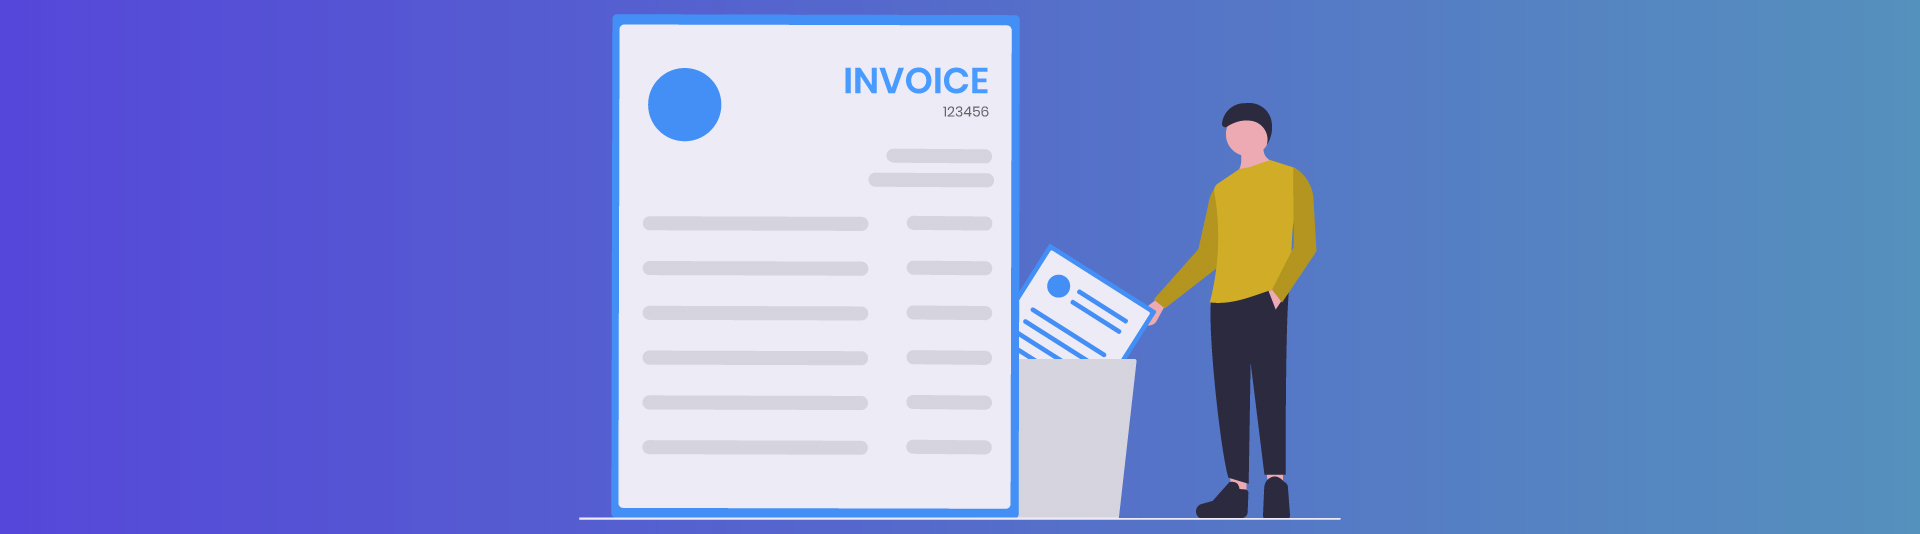 How to Make An Invoice